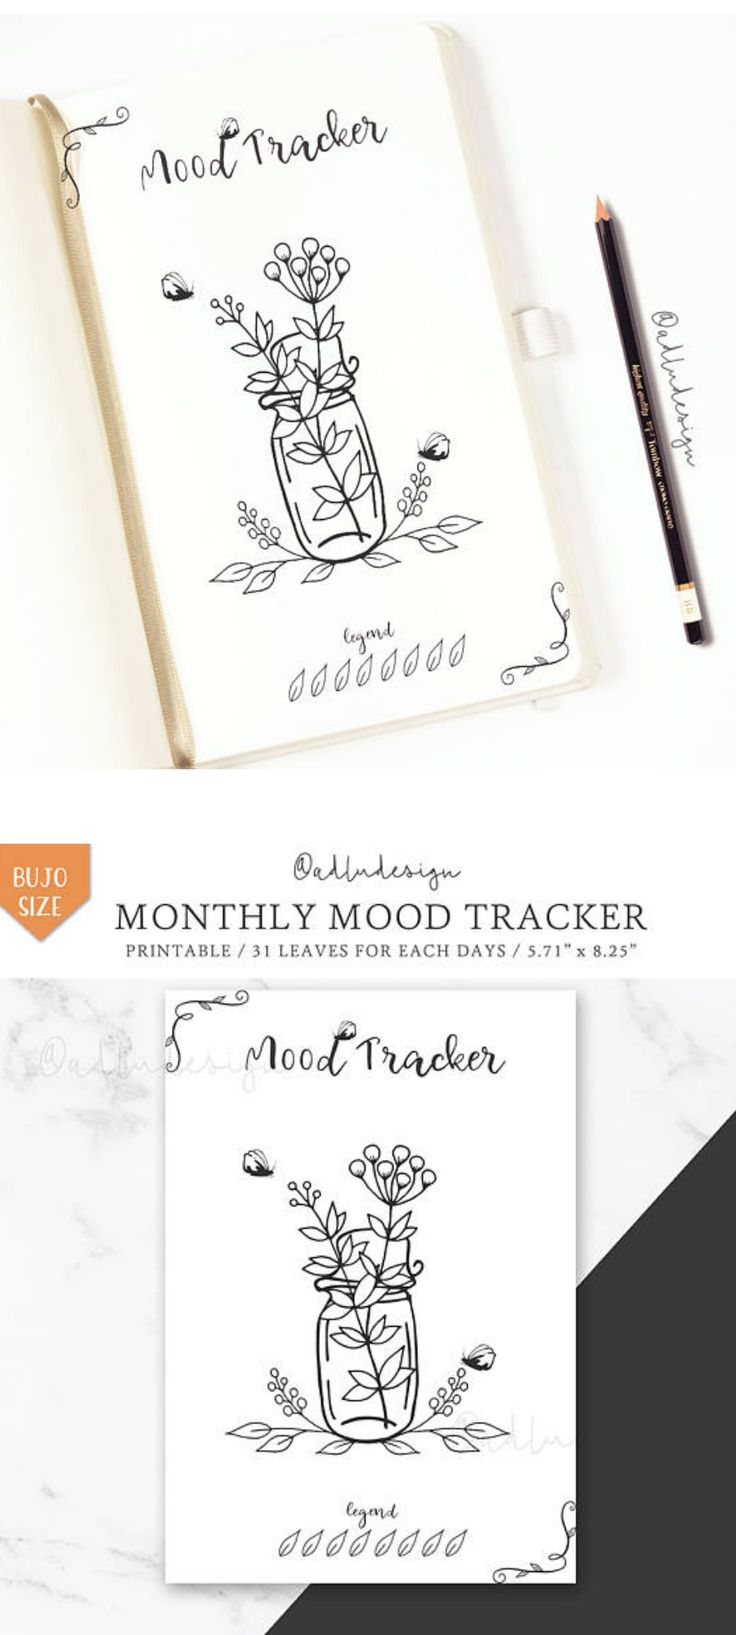 Track your mood with this monthly mood tracker printable. Color as you want the leaves and flowers. 31 leaves for each days of the month.Monthly Mood Tracker PRINTABLE / Bullet Journal Insert / Leaves and Flowers Tracker / 31 days #bulletjournals #moodtracker #ad #printable #layouts #templates #etsy